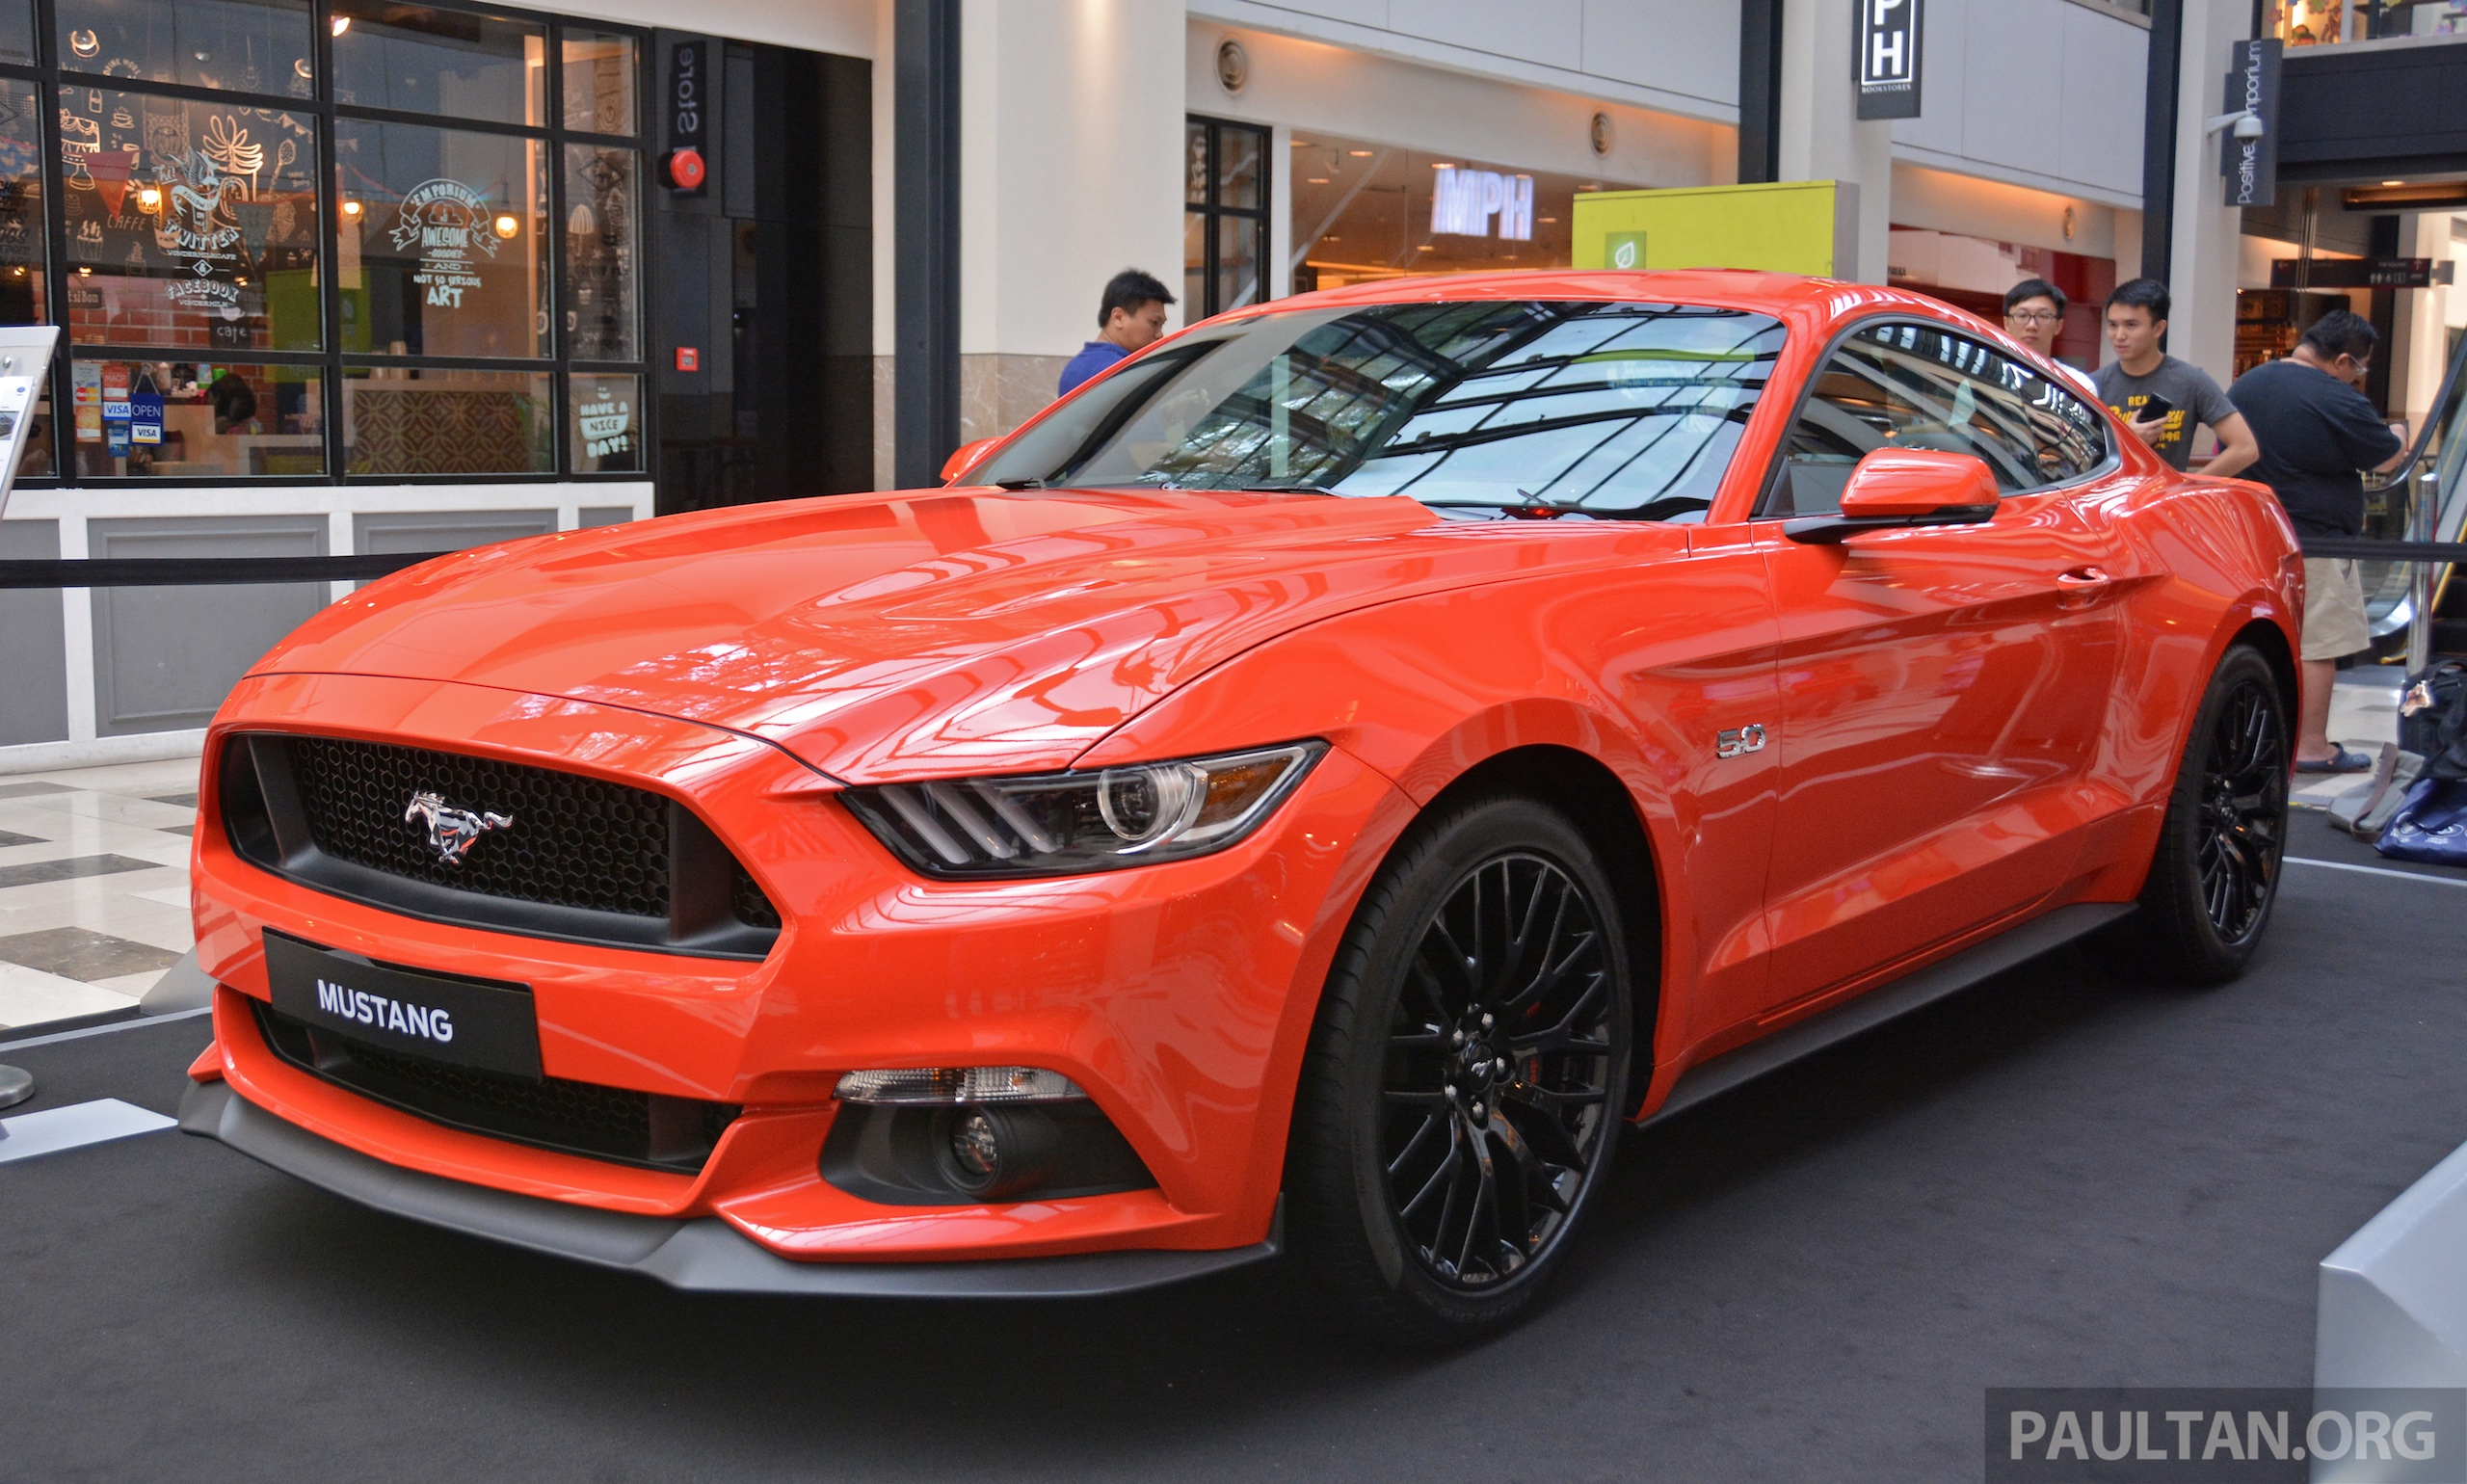 Gallery Ford Mustang 5 0 Gt On Display At Publika Image